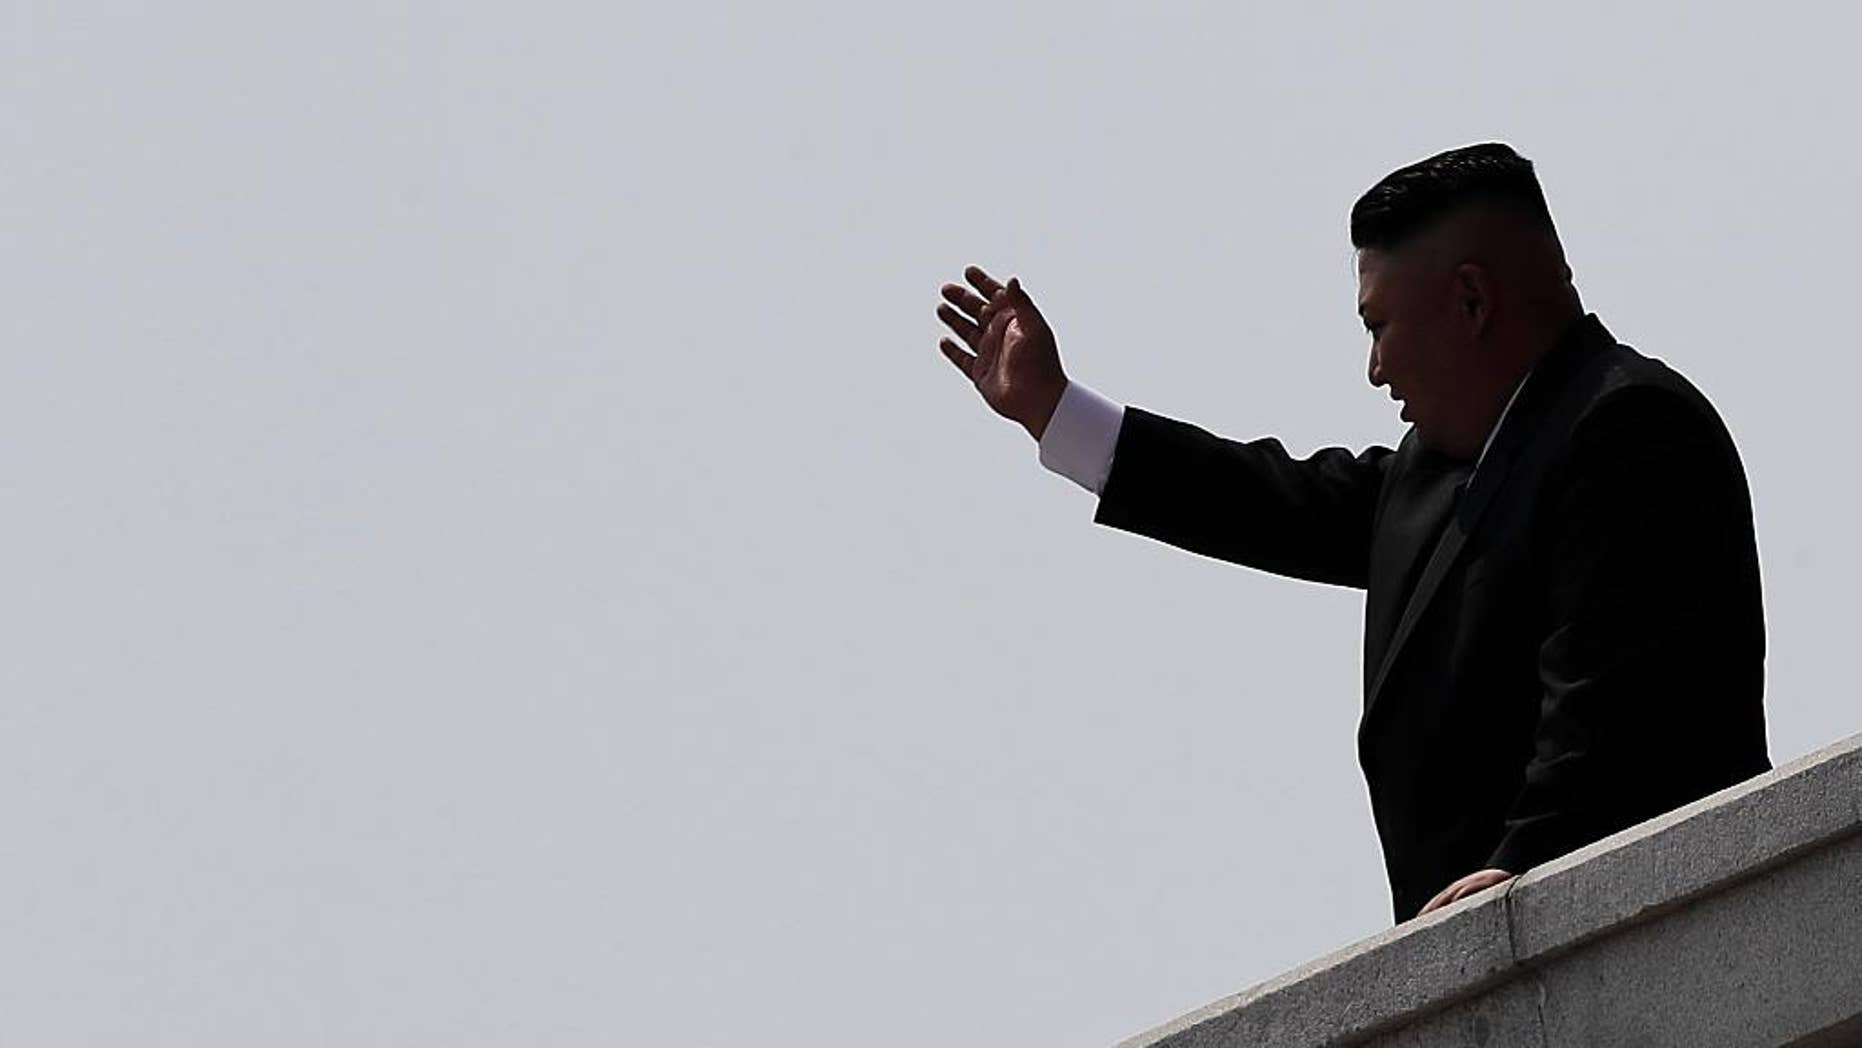 North Korean leader Kim Jong Un is seen in silhouette as he waves during a military parade on Saturday, April 15, 2017, in Pyongyang, North Korea to celebrate the 105th birth anniversary of Kim Il Sung, the country's late founder and grandfather of current ruler Kim Jong Un. (AP Photo/Wong Maye-E)